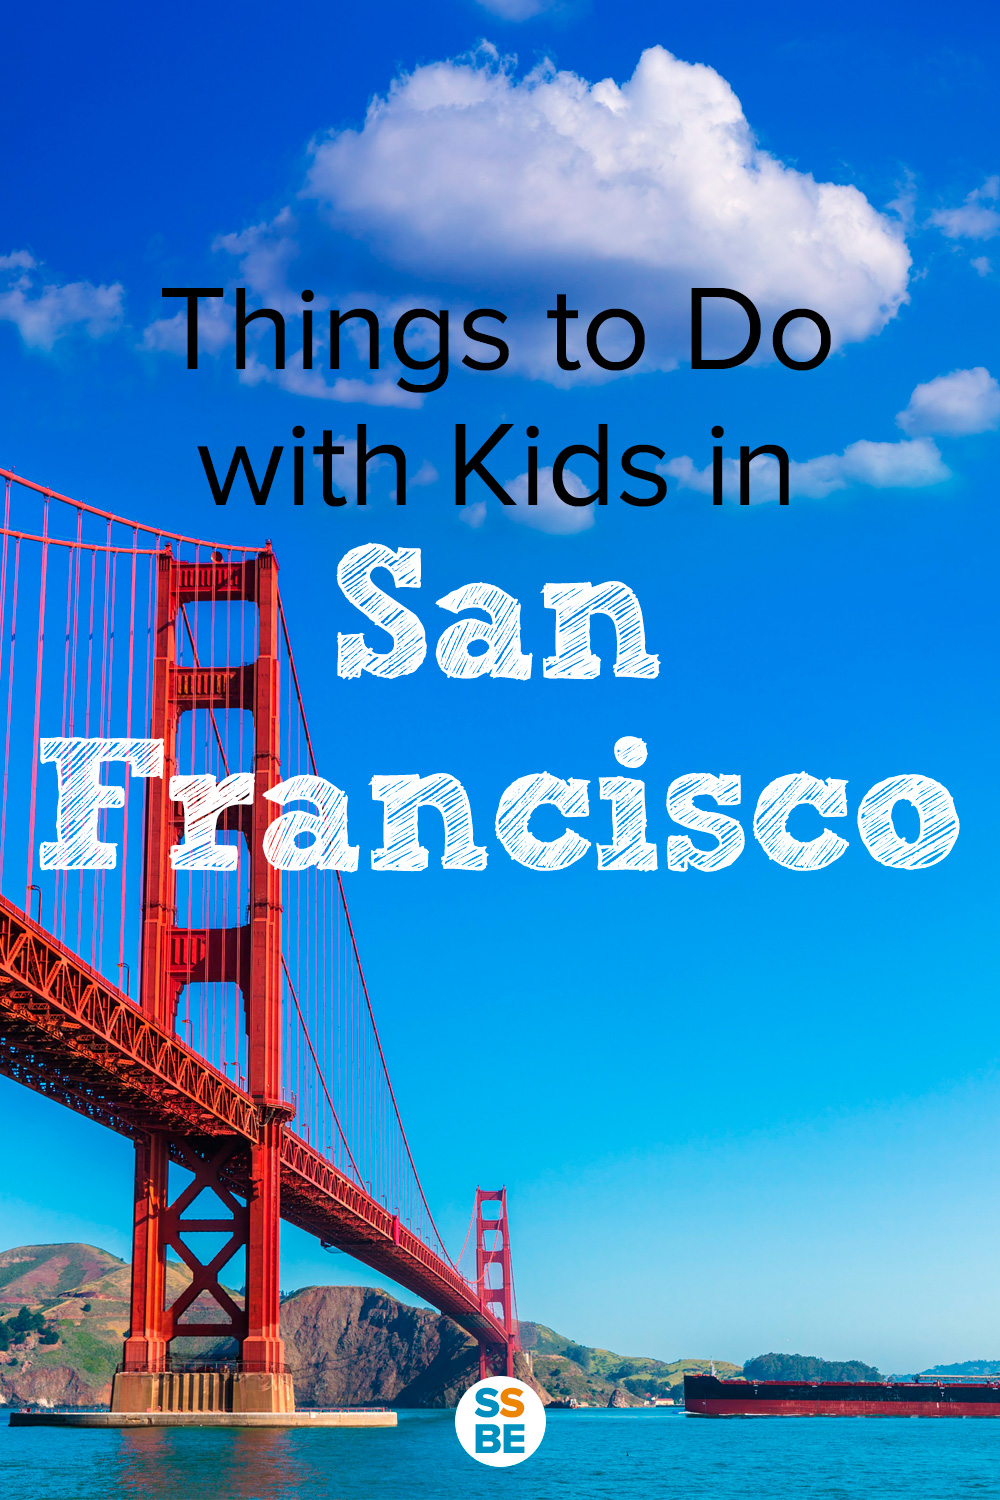 top 5 things to do in san francisco california - 28 images ...